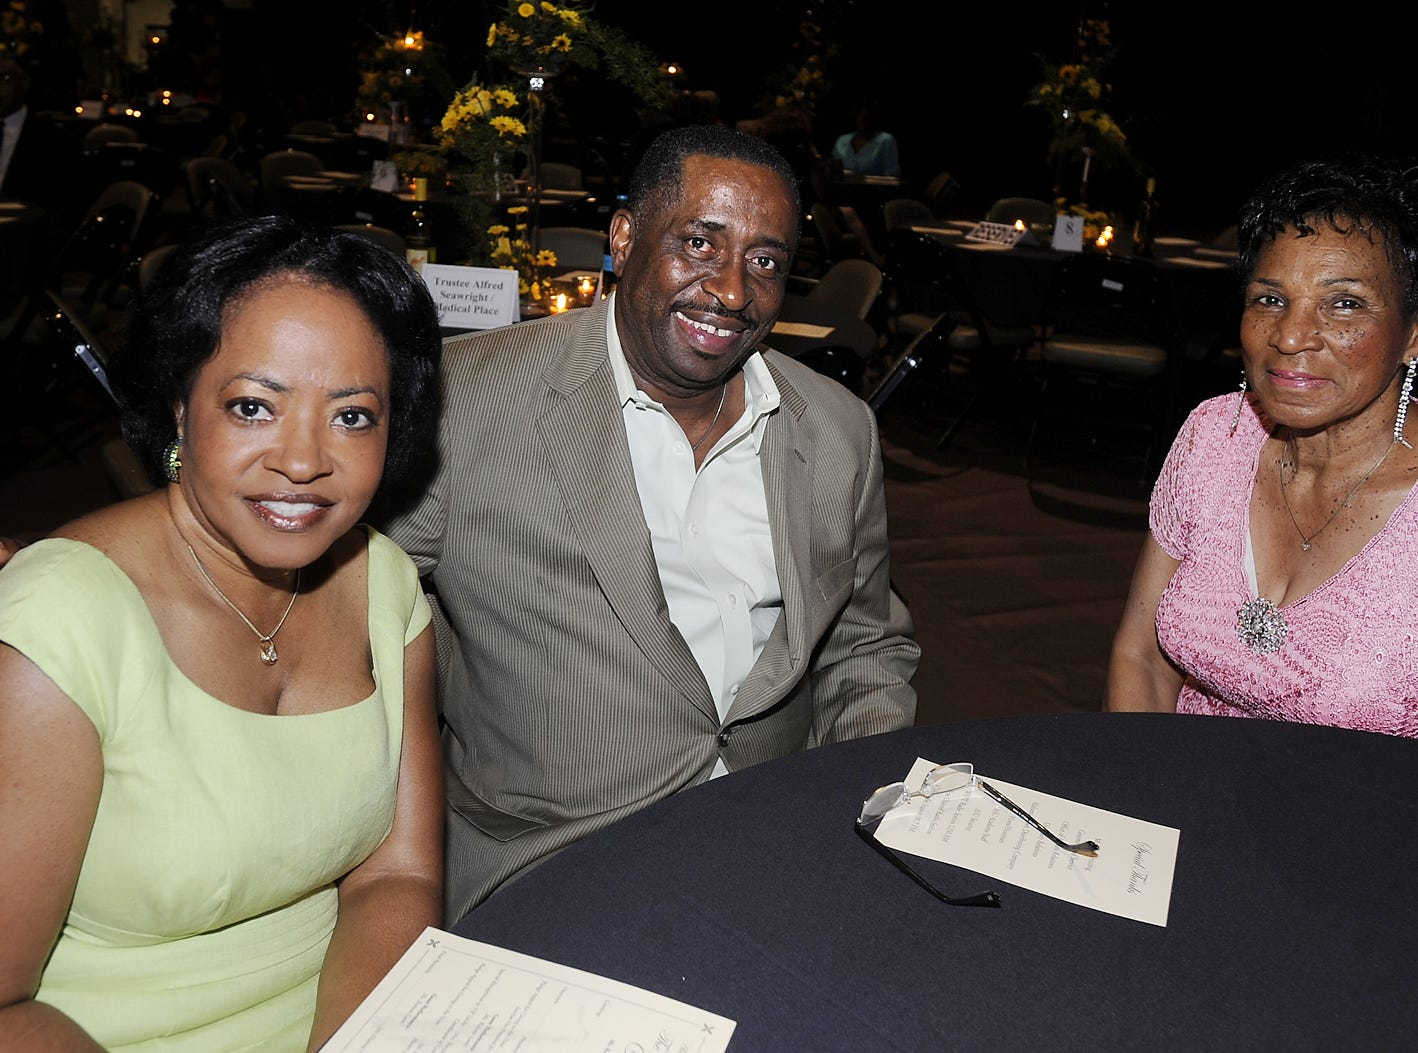 Verlyn Calhoun, from left, Greg Calhoun and Margurite Foley enjoy The Gathering at the ASU Acadome at Alabama State University in Montgomery, Ala. on Saturday July 12, 2008.(Montgomery Advertiser, Mickey Welsh)